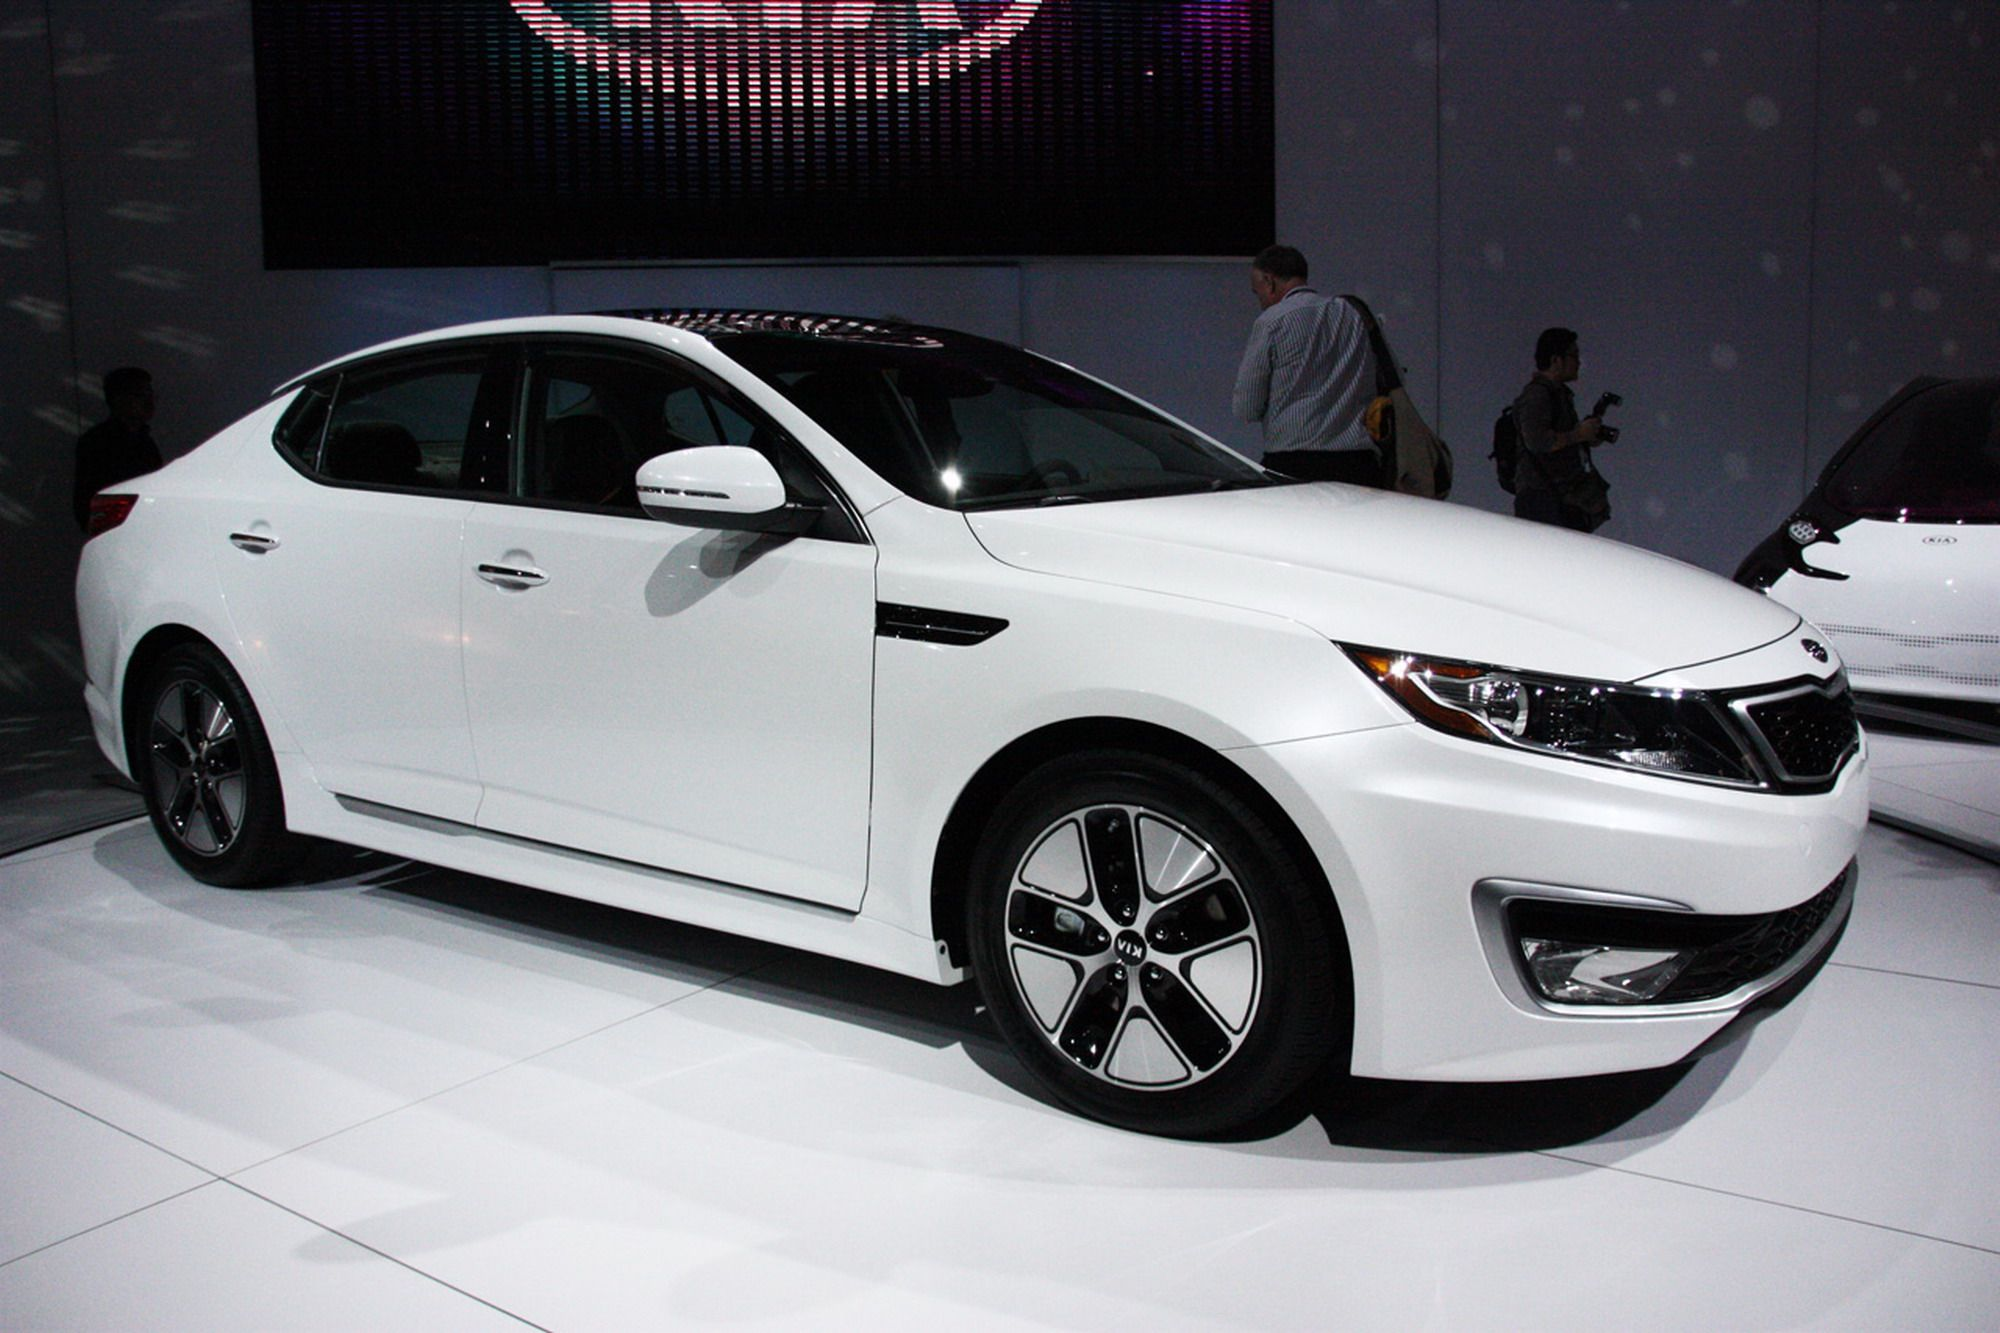 2011 kia optima hybrid exterior car picture big toys pinterest rh pinterest co uk 2011 kia optima repair manual 2011 kia optima lx owners manual